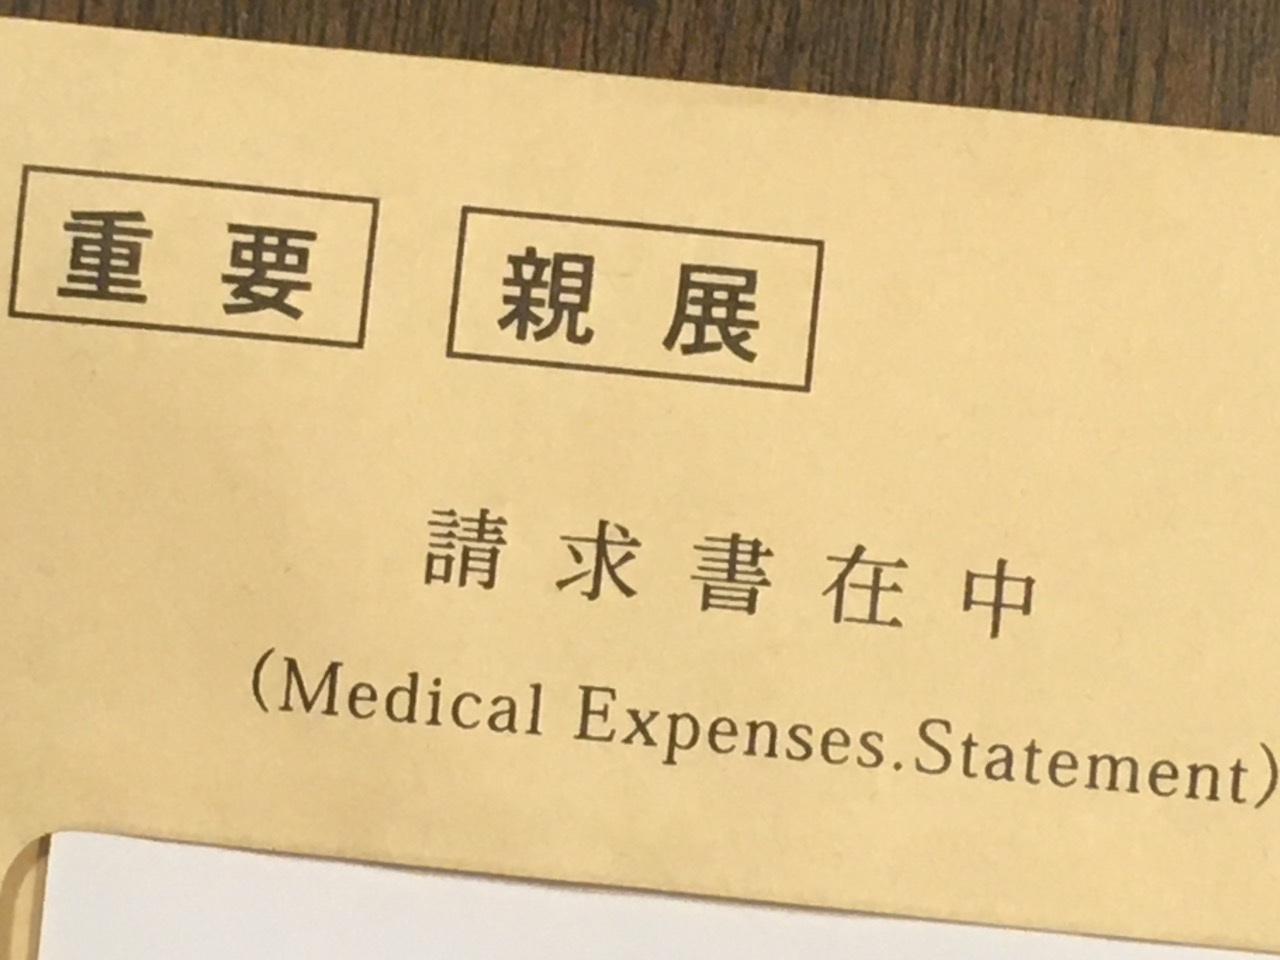 MedicalExpensesStatement